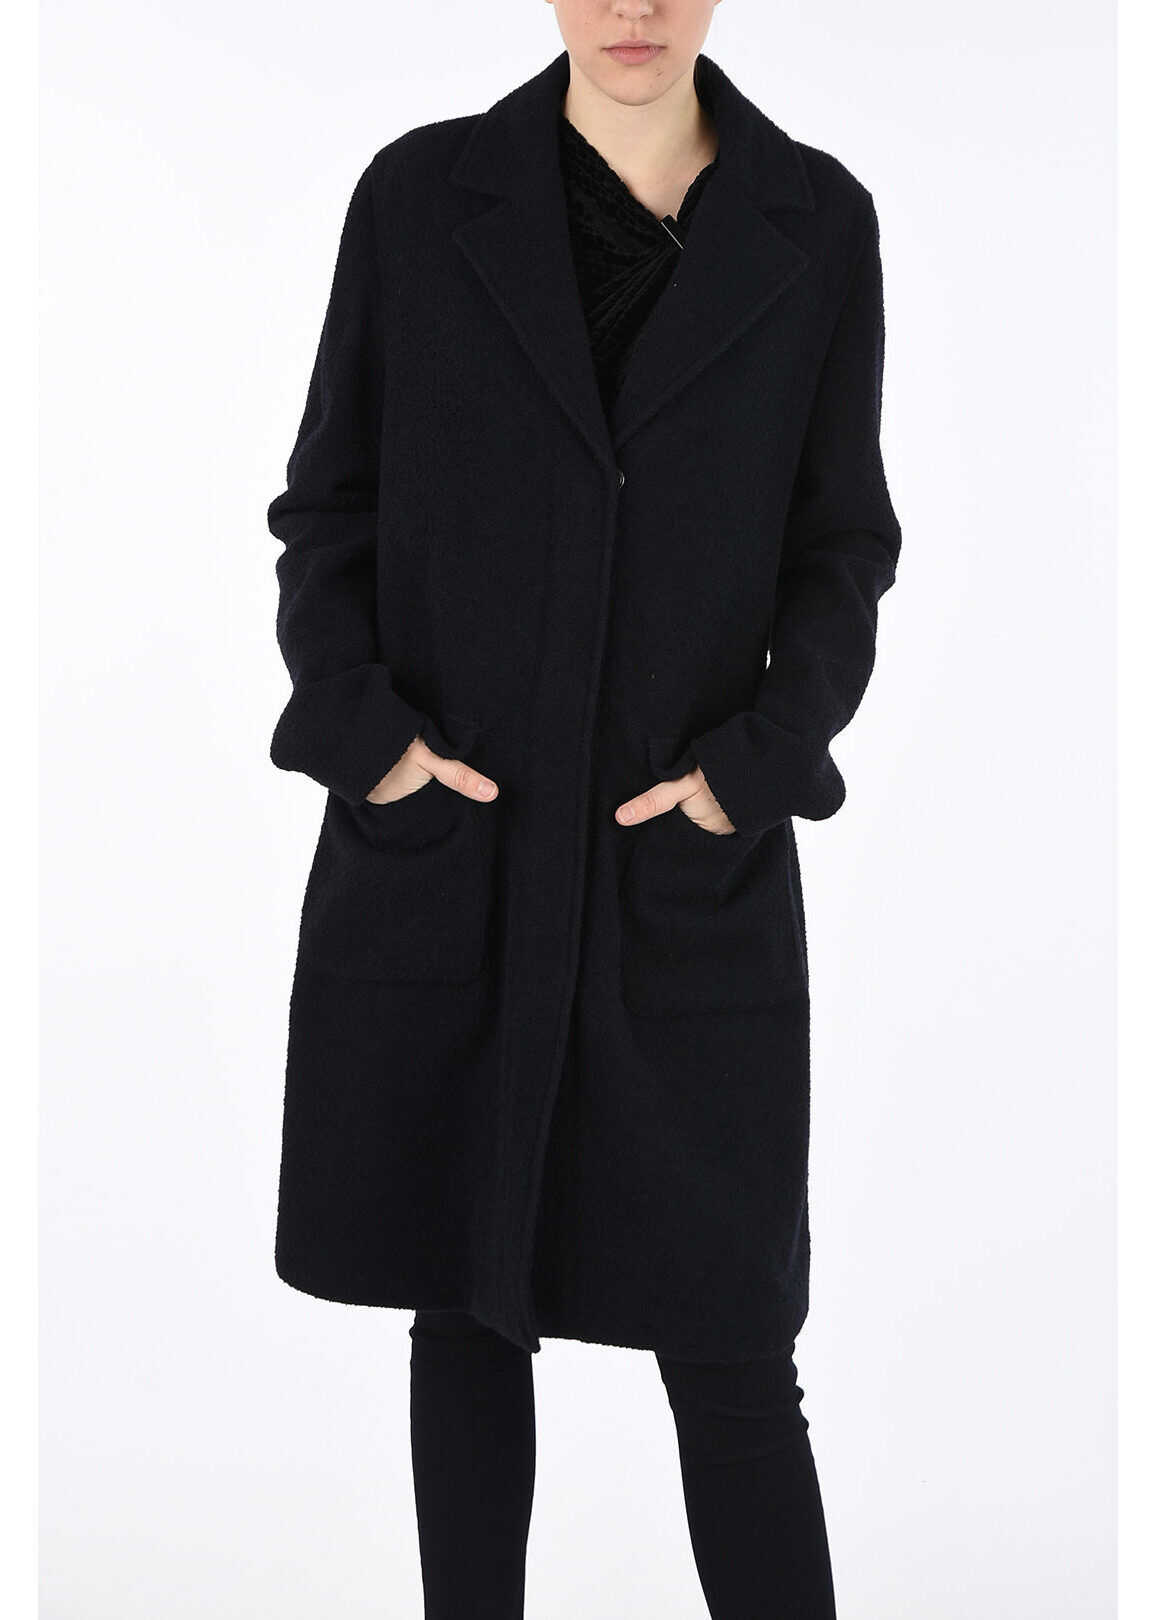 Armani ARMANI JEANS Wool Coat BLUE